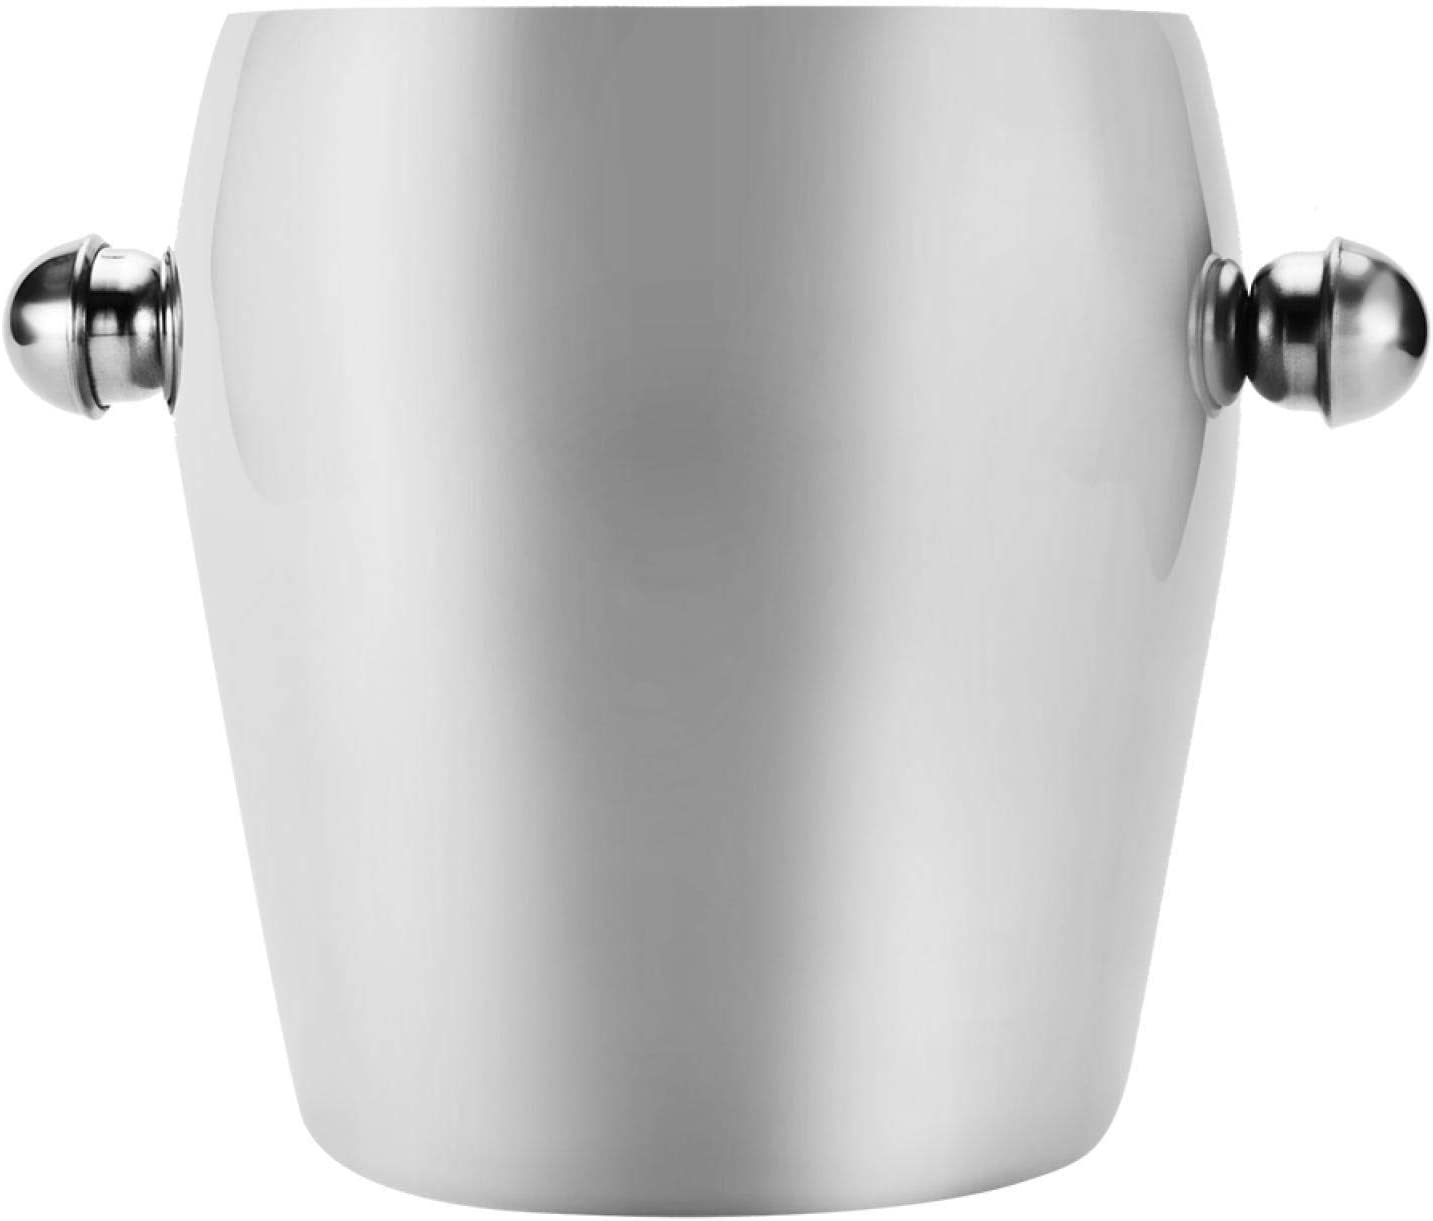 Primary Special price for a limited Sale time Color Drum Ice Bucket H Buckets Durable Material